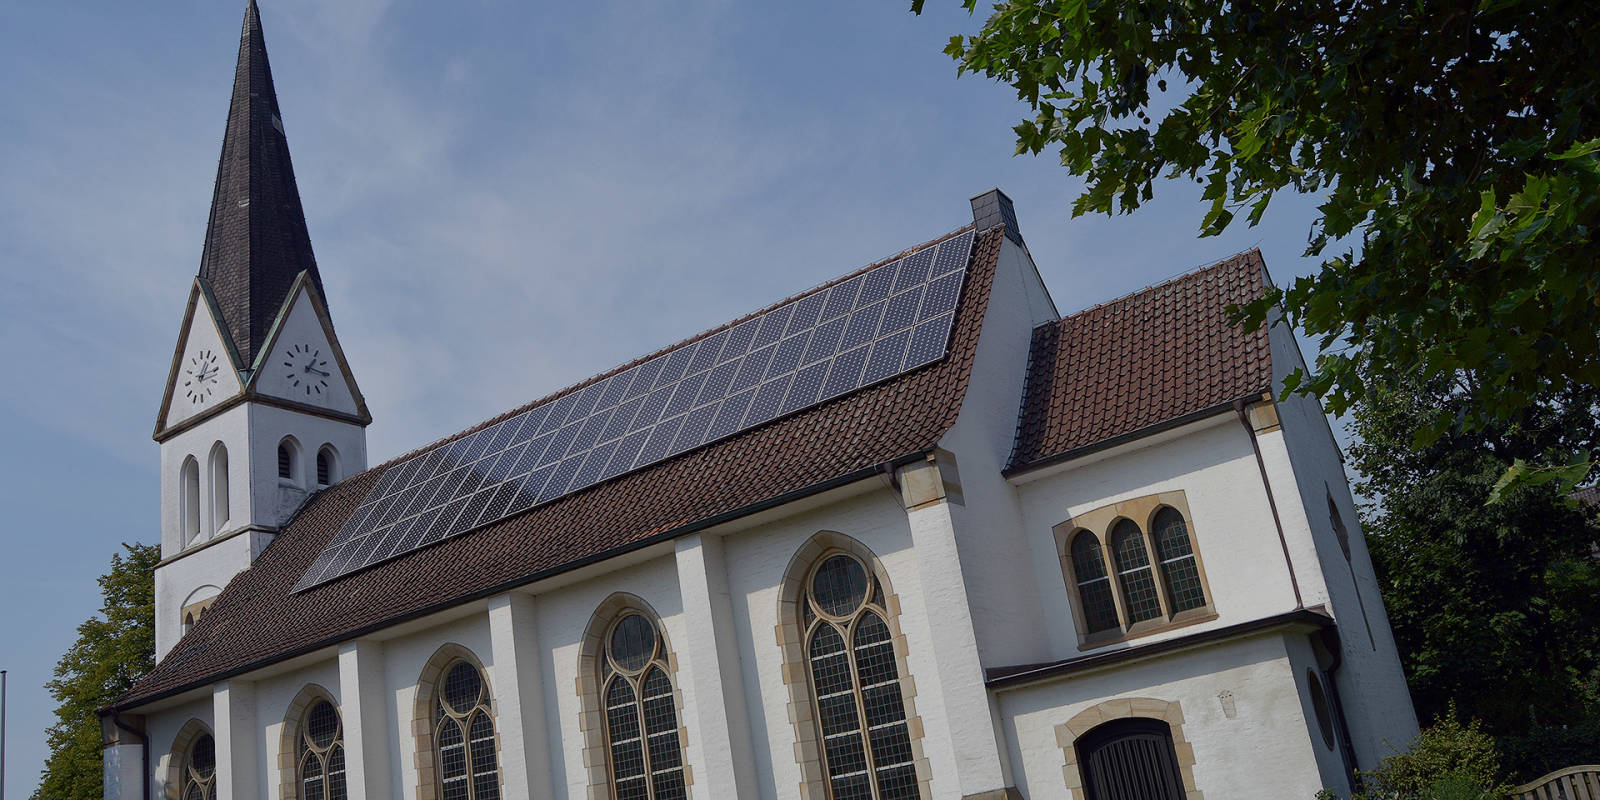 Solar Power for Churches - Credit: InterfaithPowerandLight.org